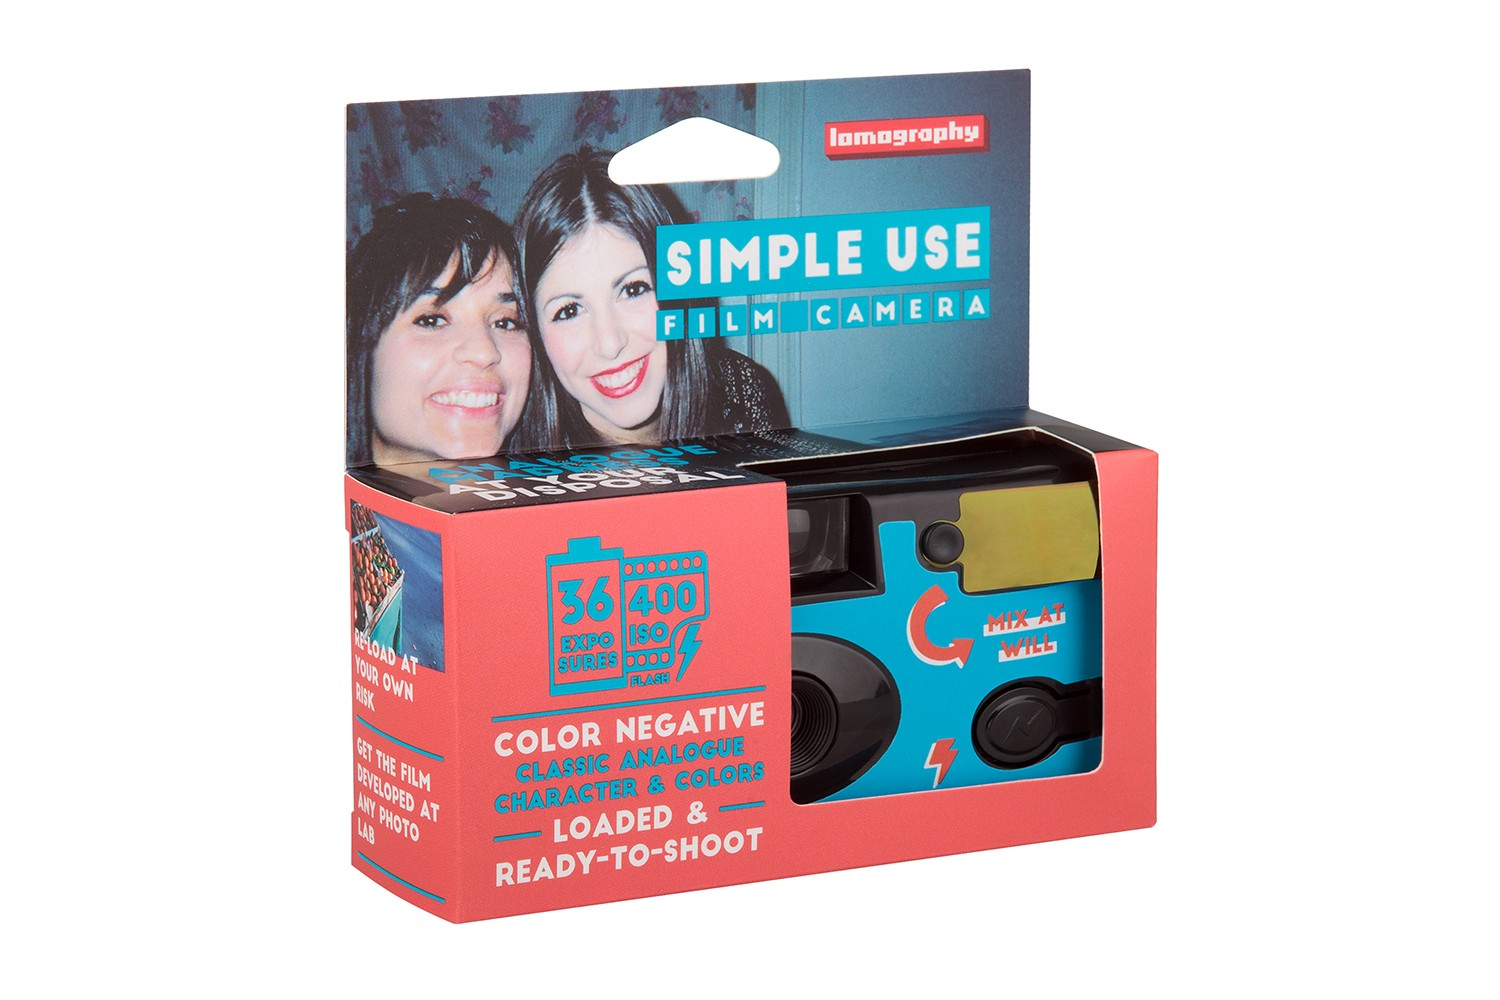 omography_simple_use_film_camera_color_negative_400_packaging